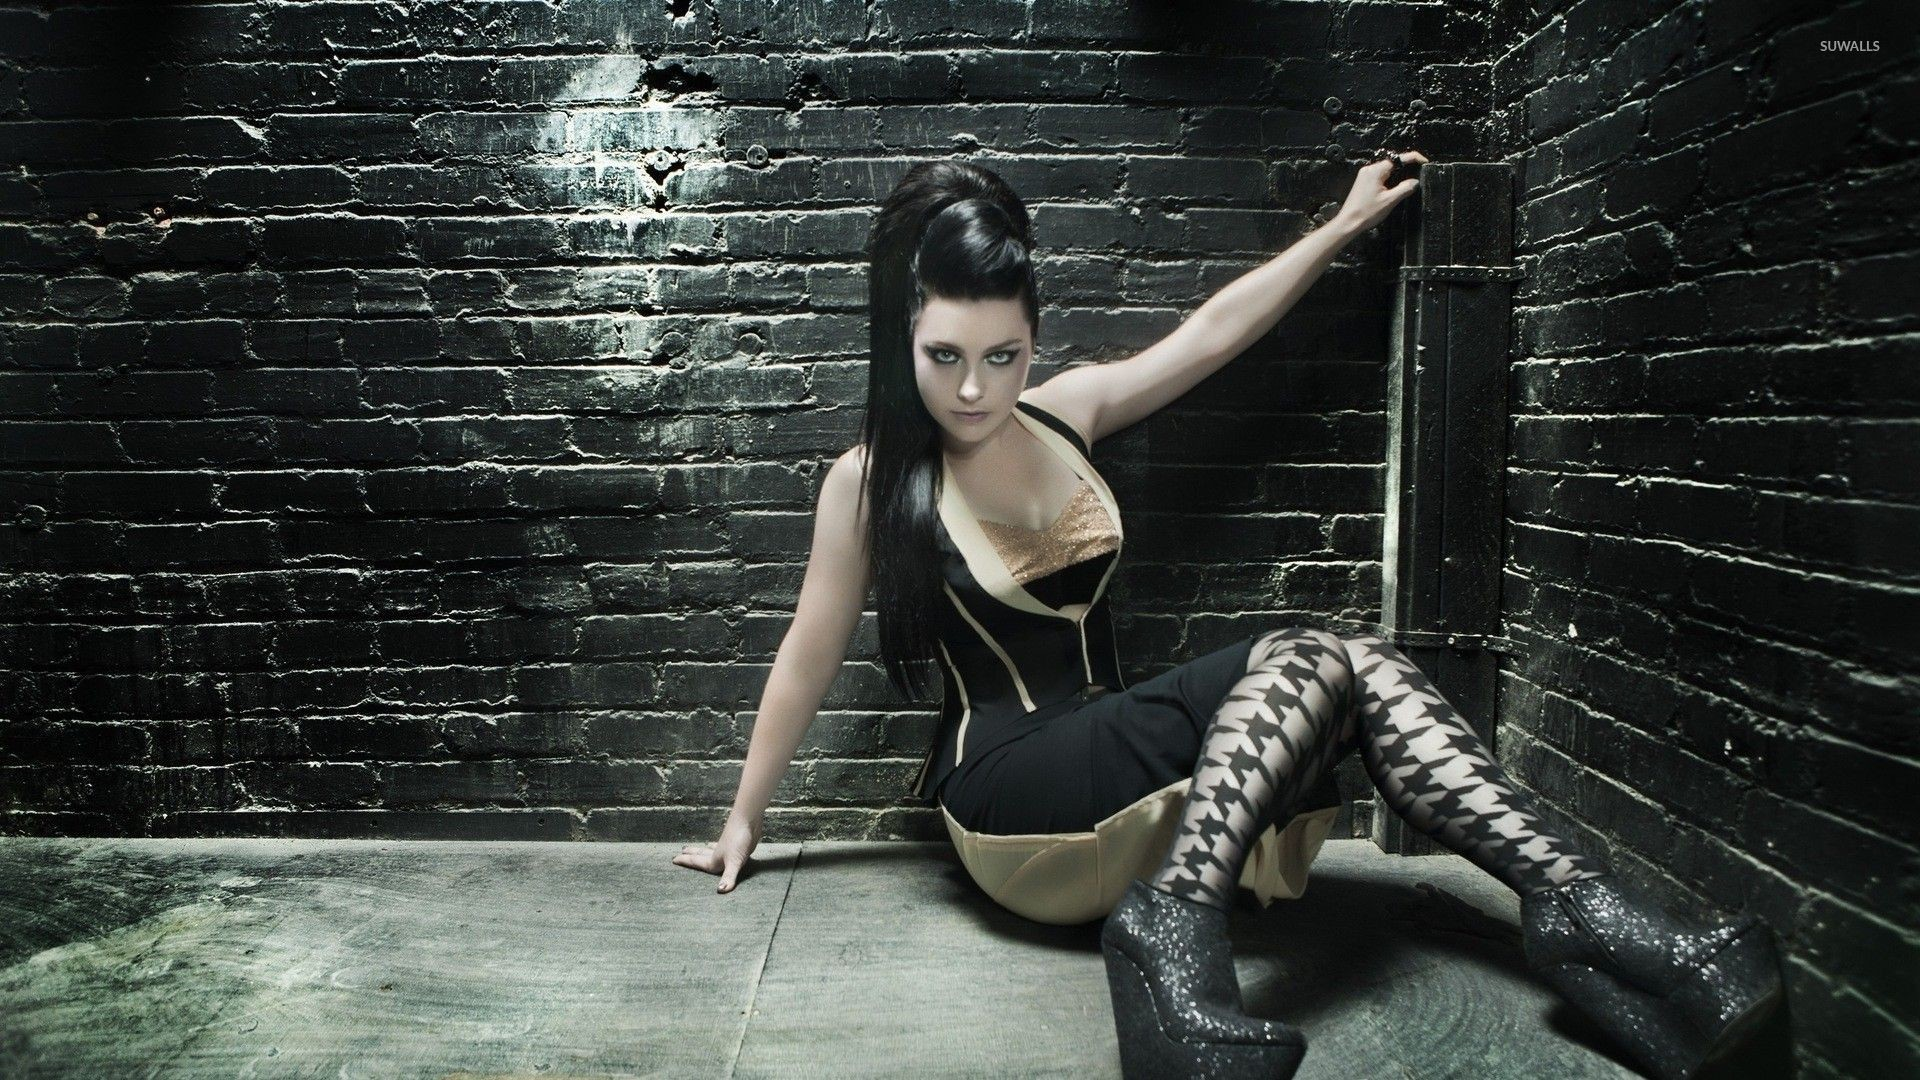 1920x1080 Amy Lee [7] wallpaper